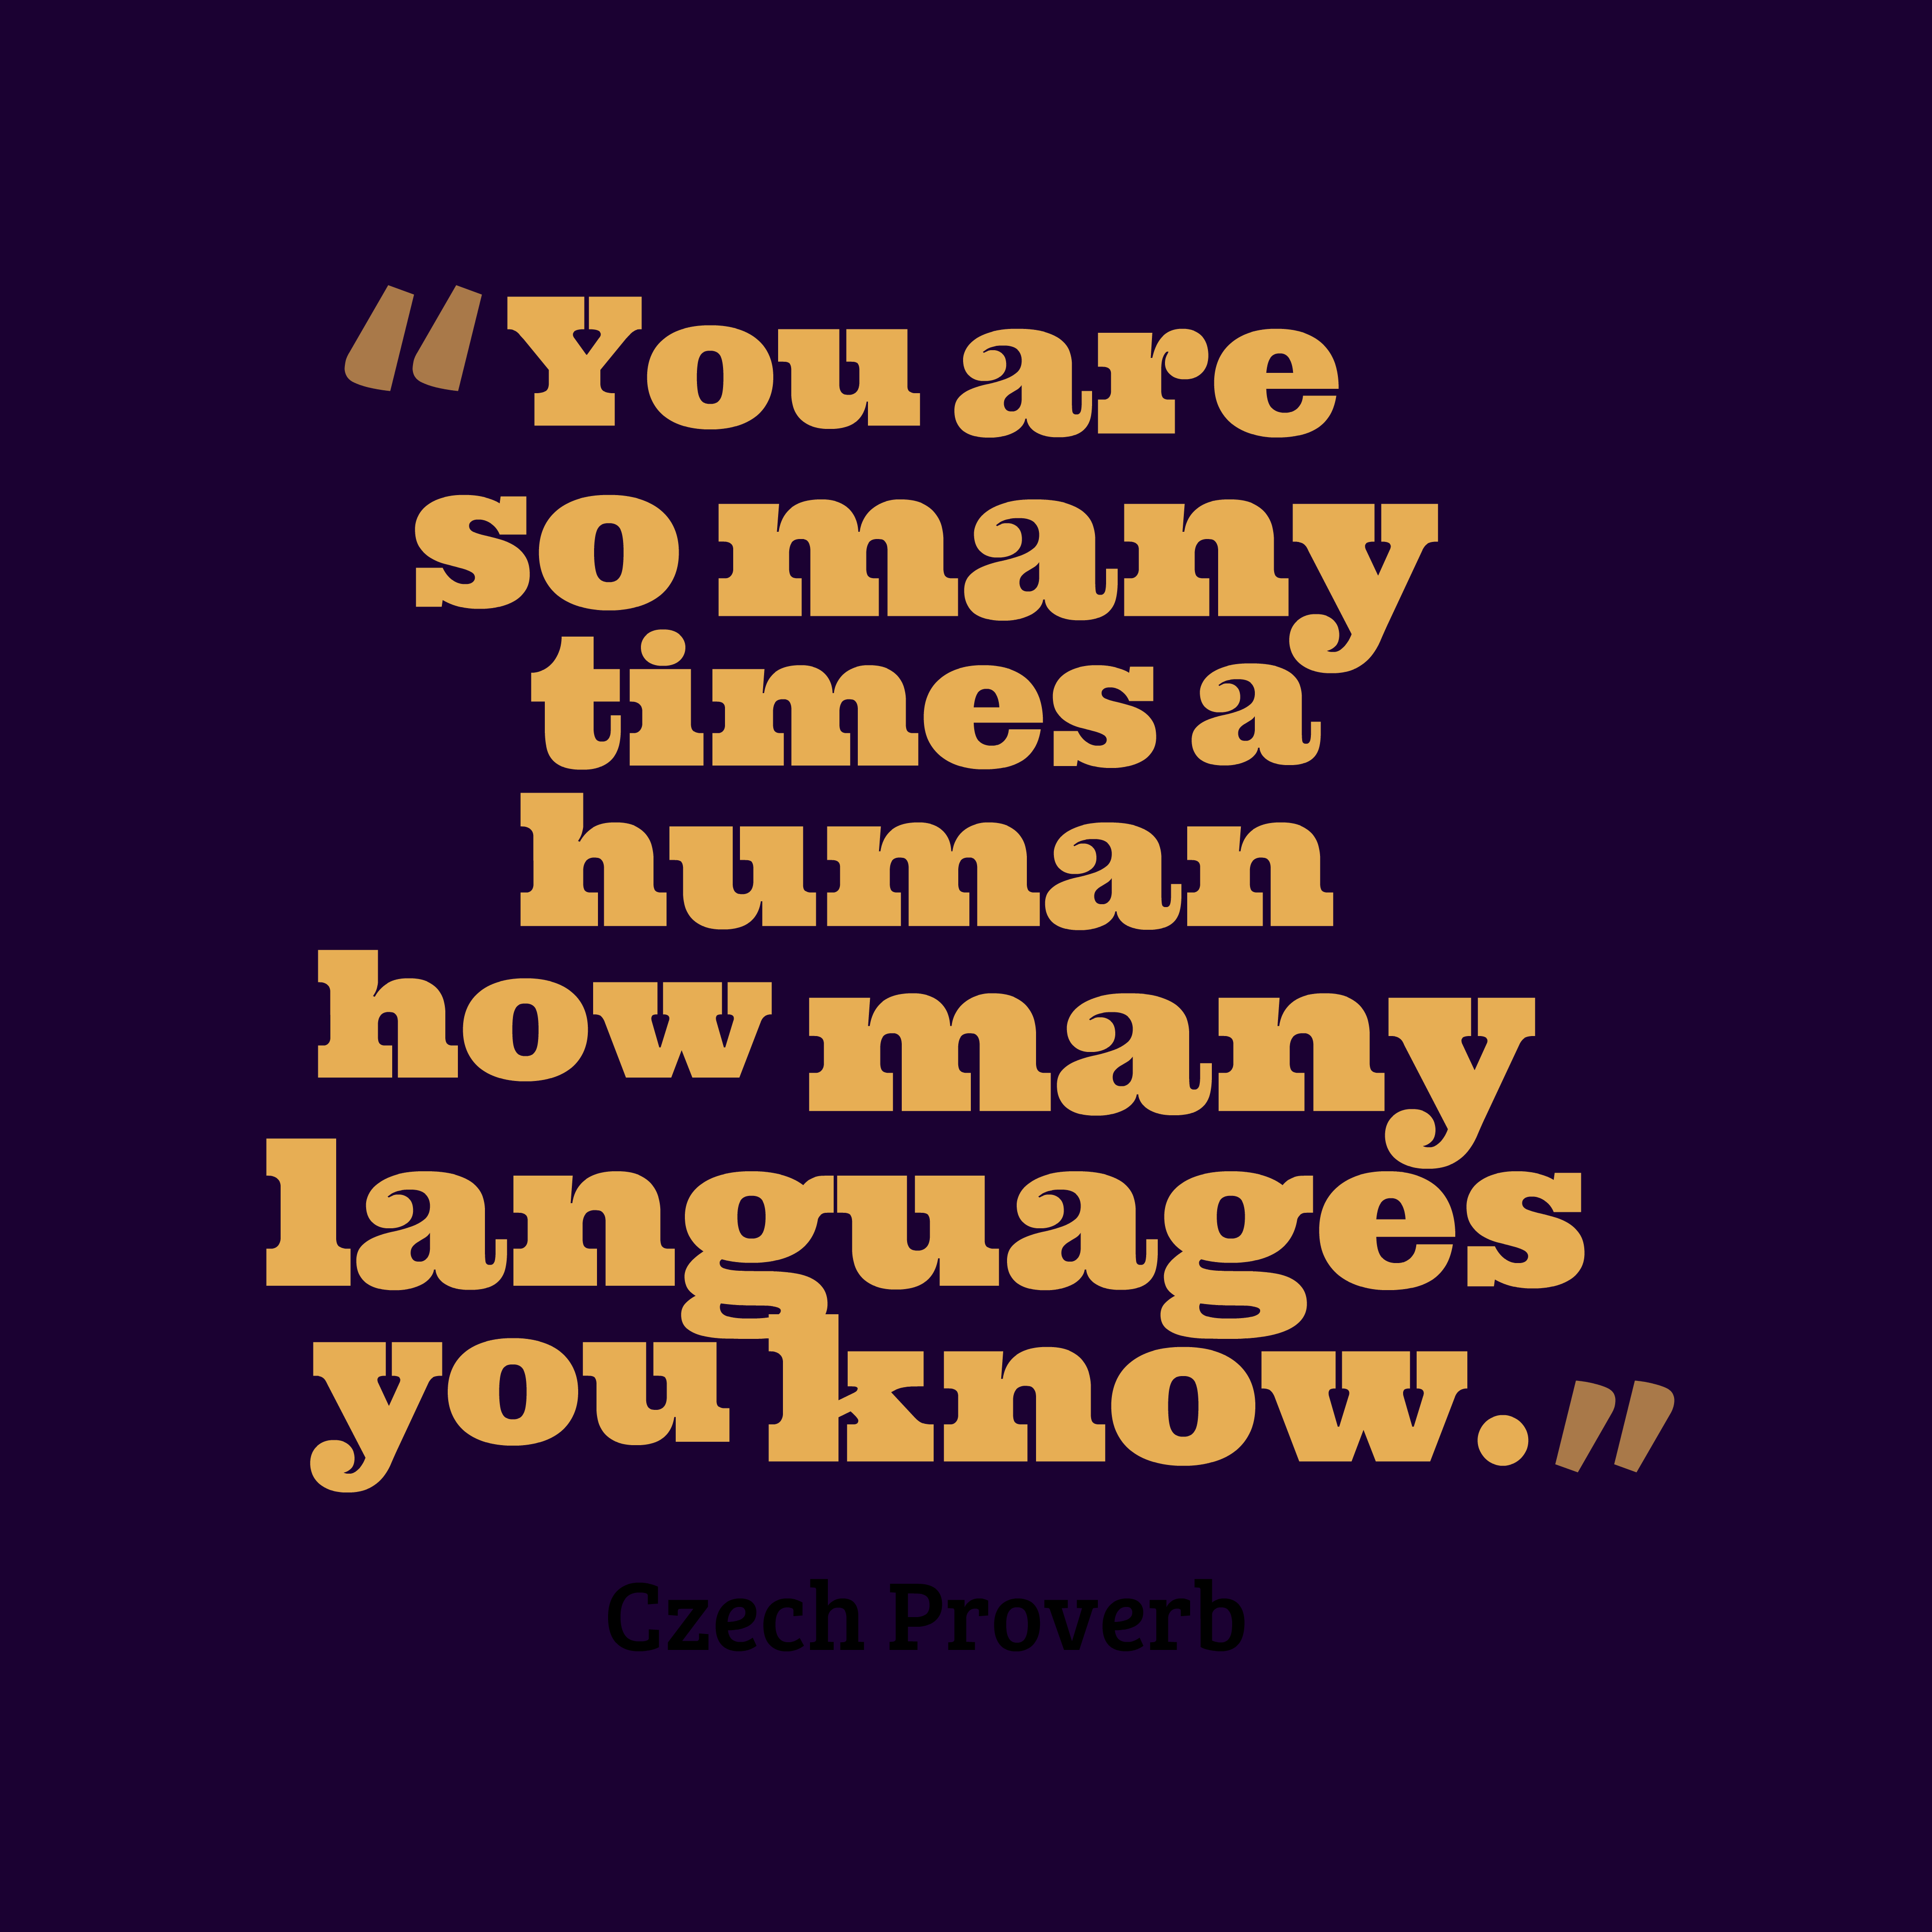 Quotes image of You are so many times a human how many languages you know.